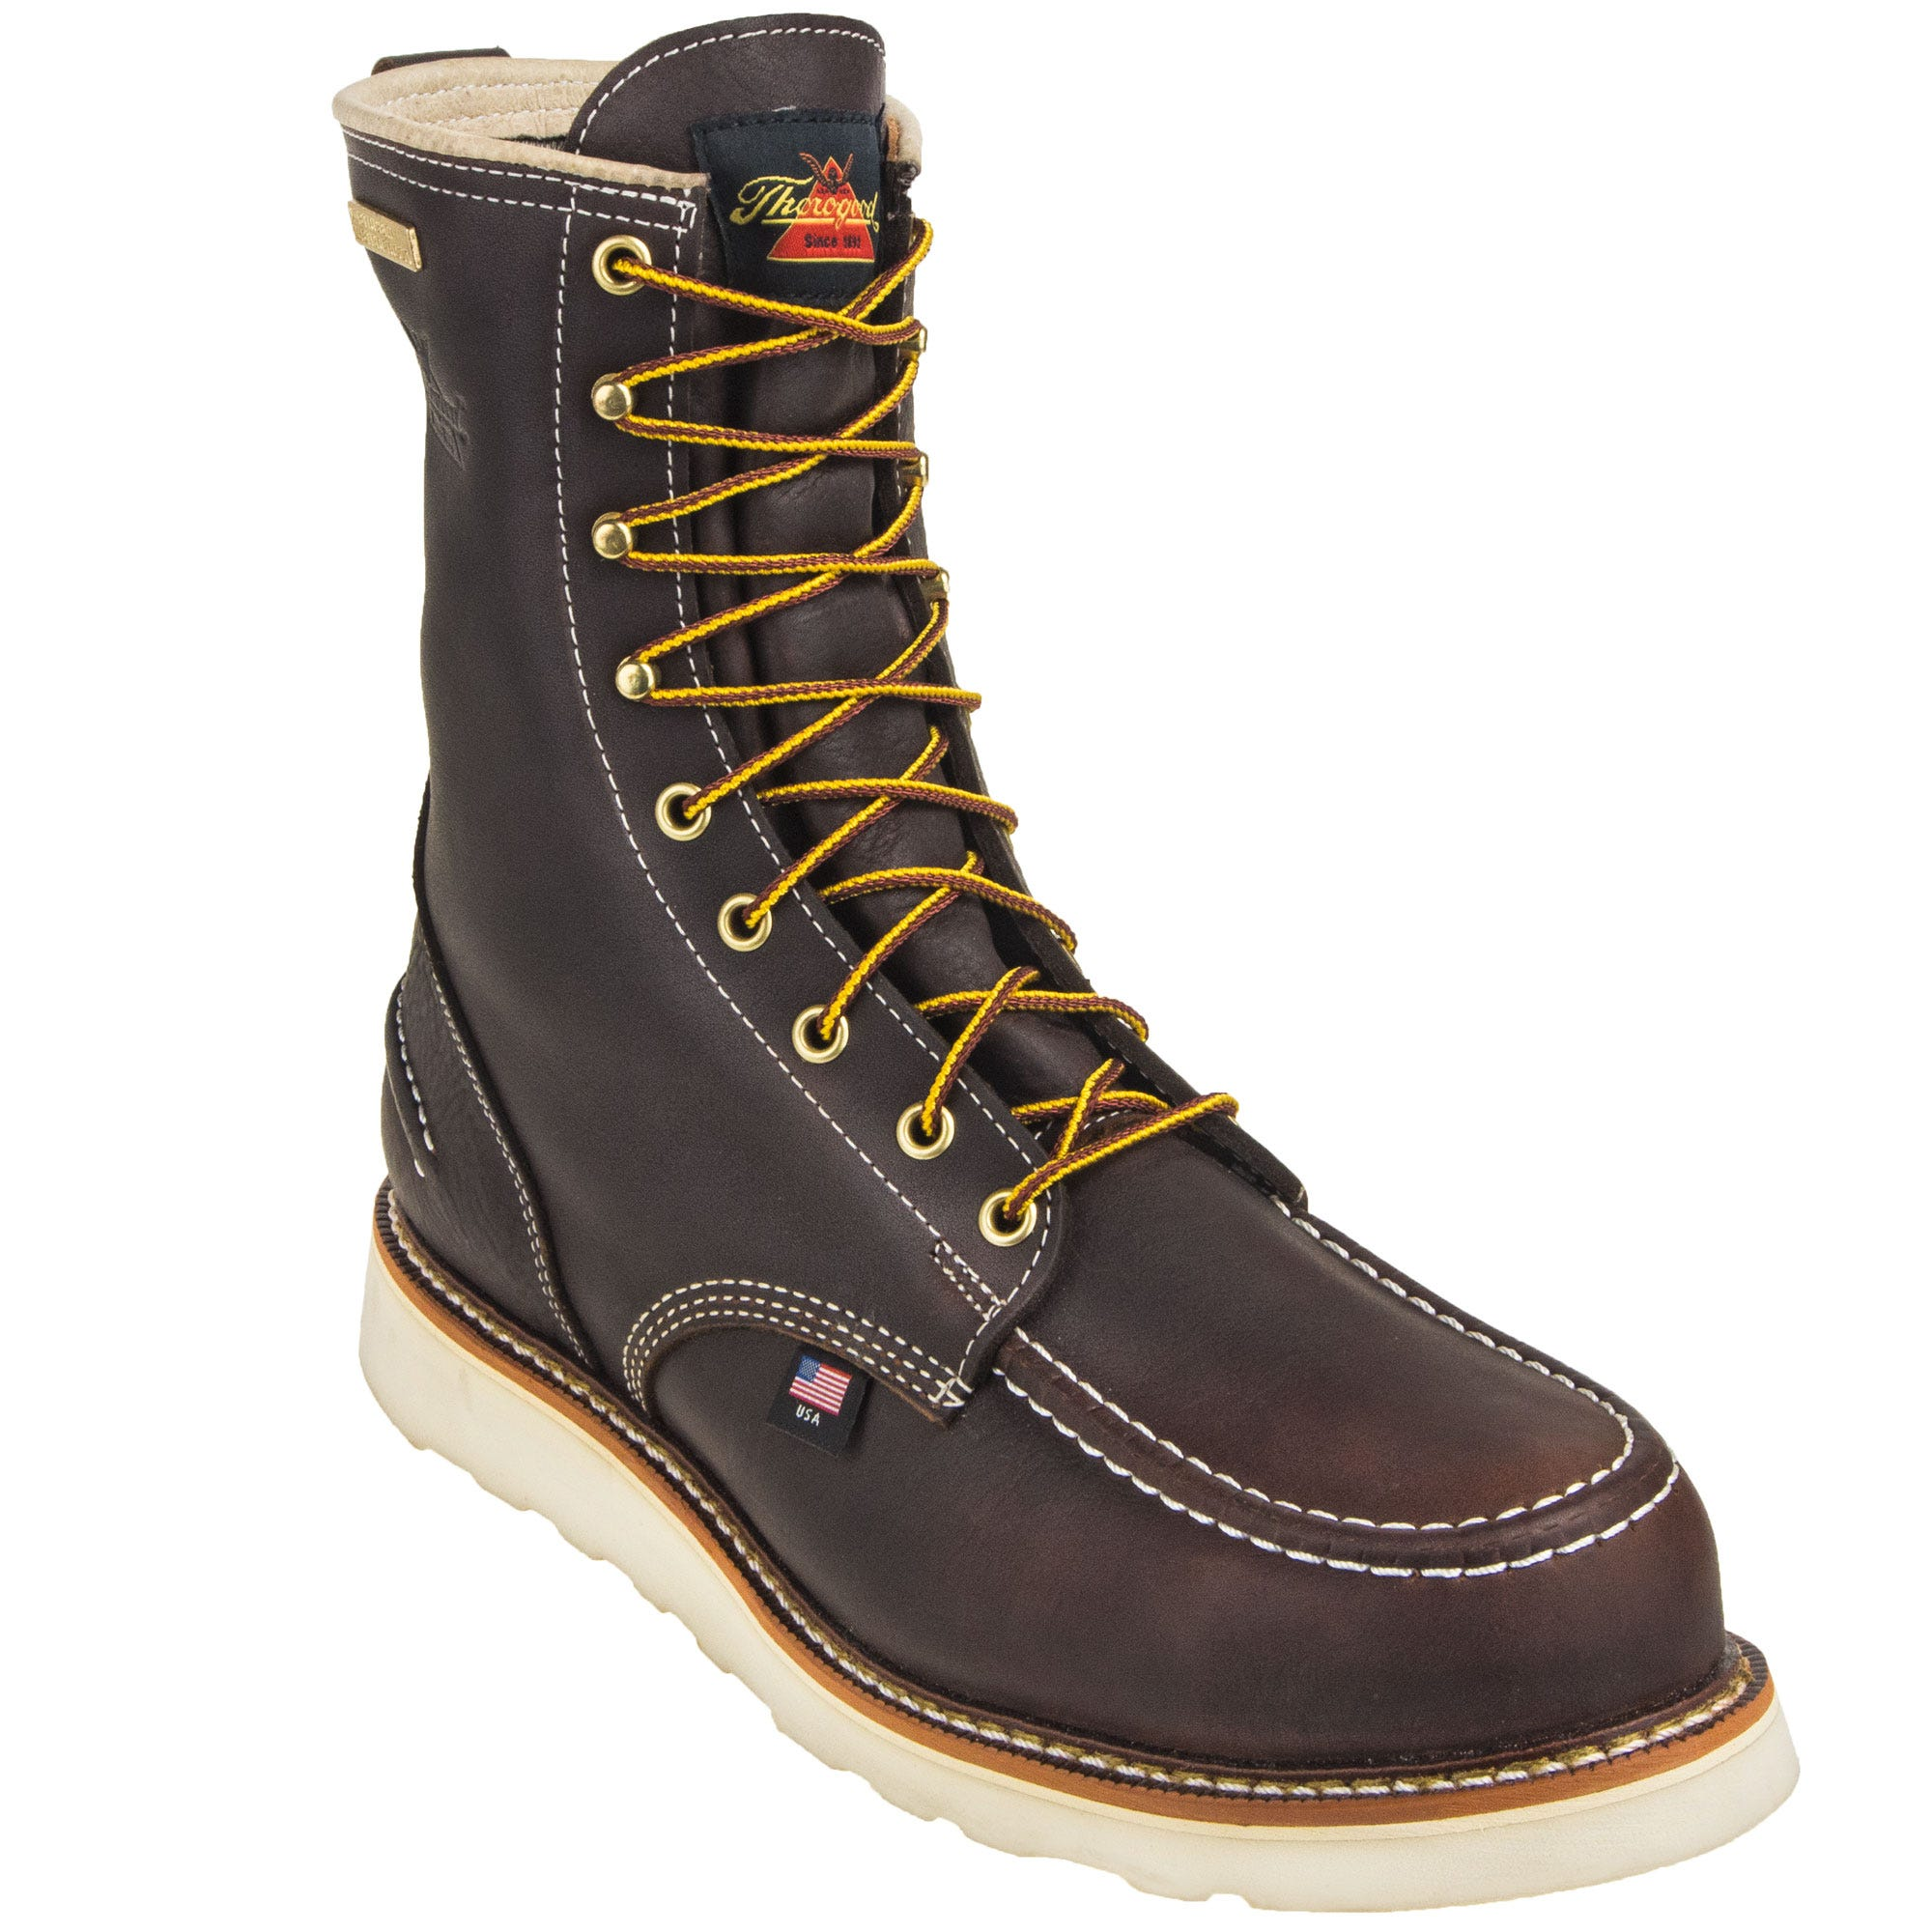 b87a44ede02 Thorogood Boots: Men's 814 3800 American Heritage Non Safety ...